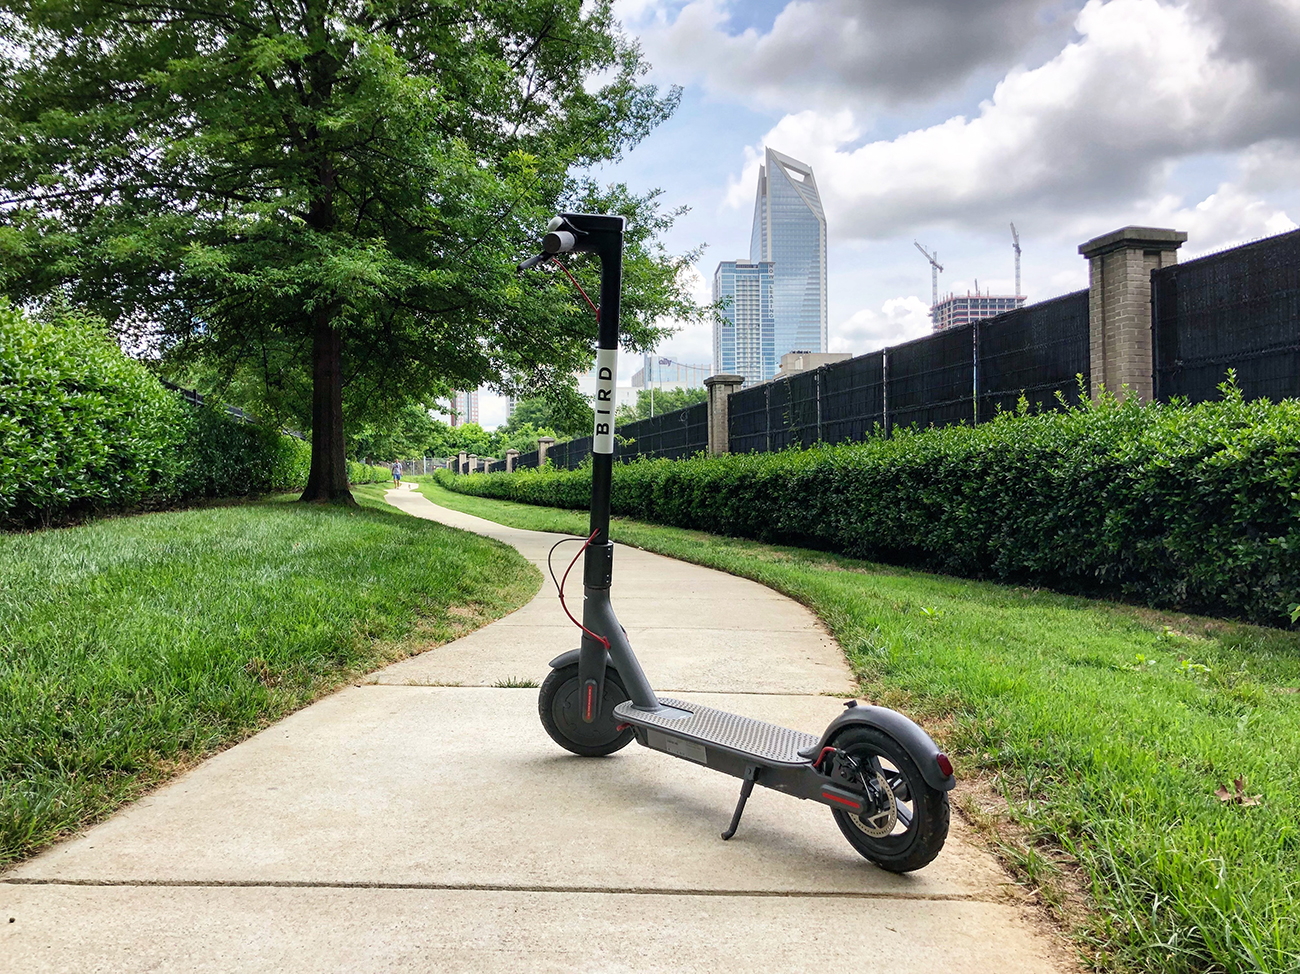 I rode a Bird scooter 14 miles in one day. Here's what I learned